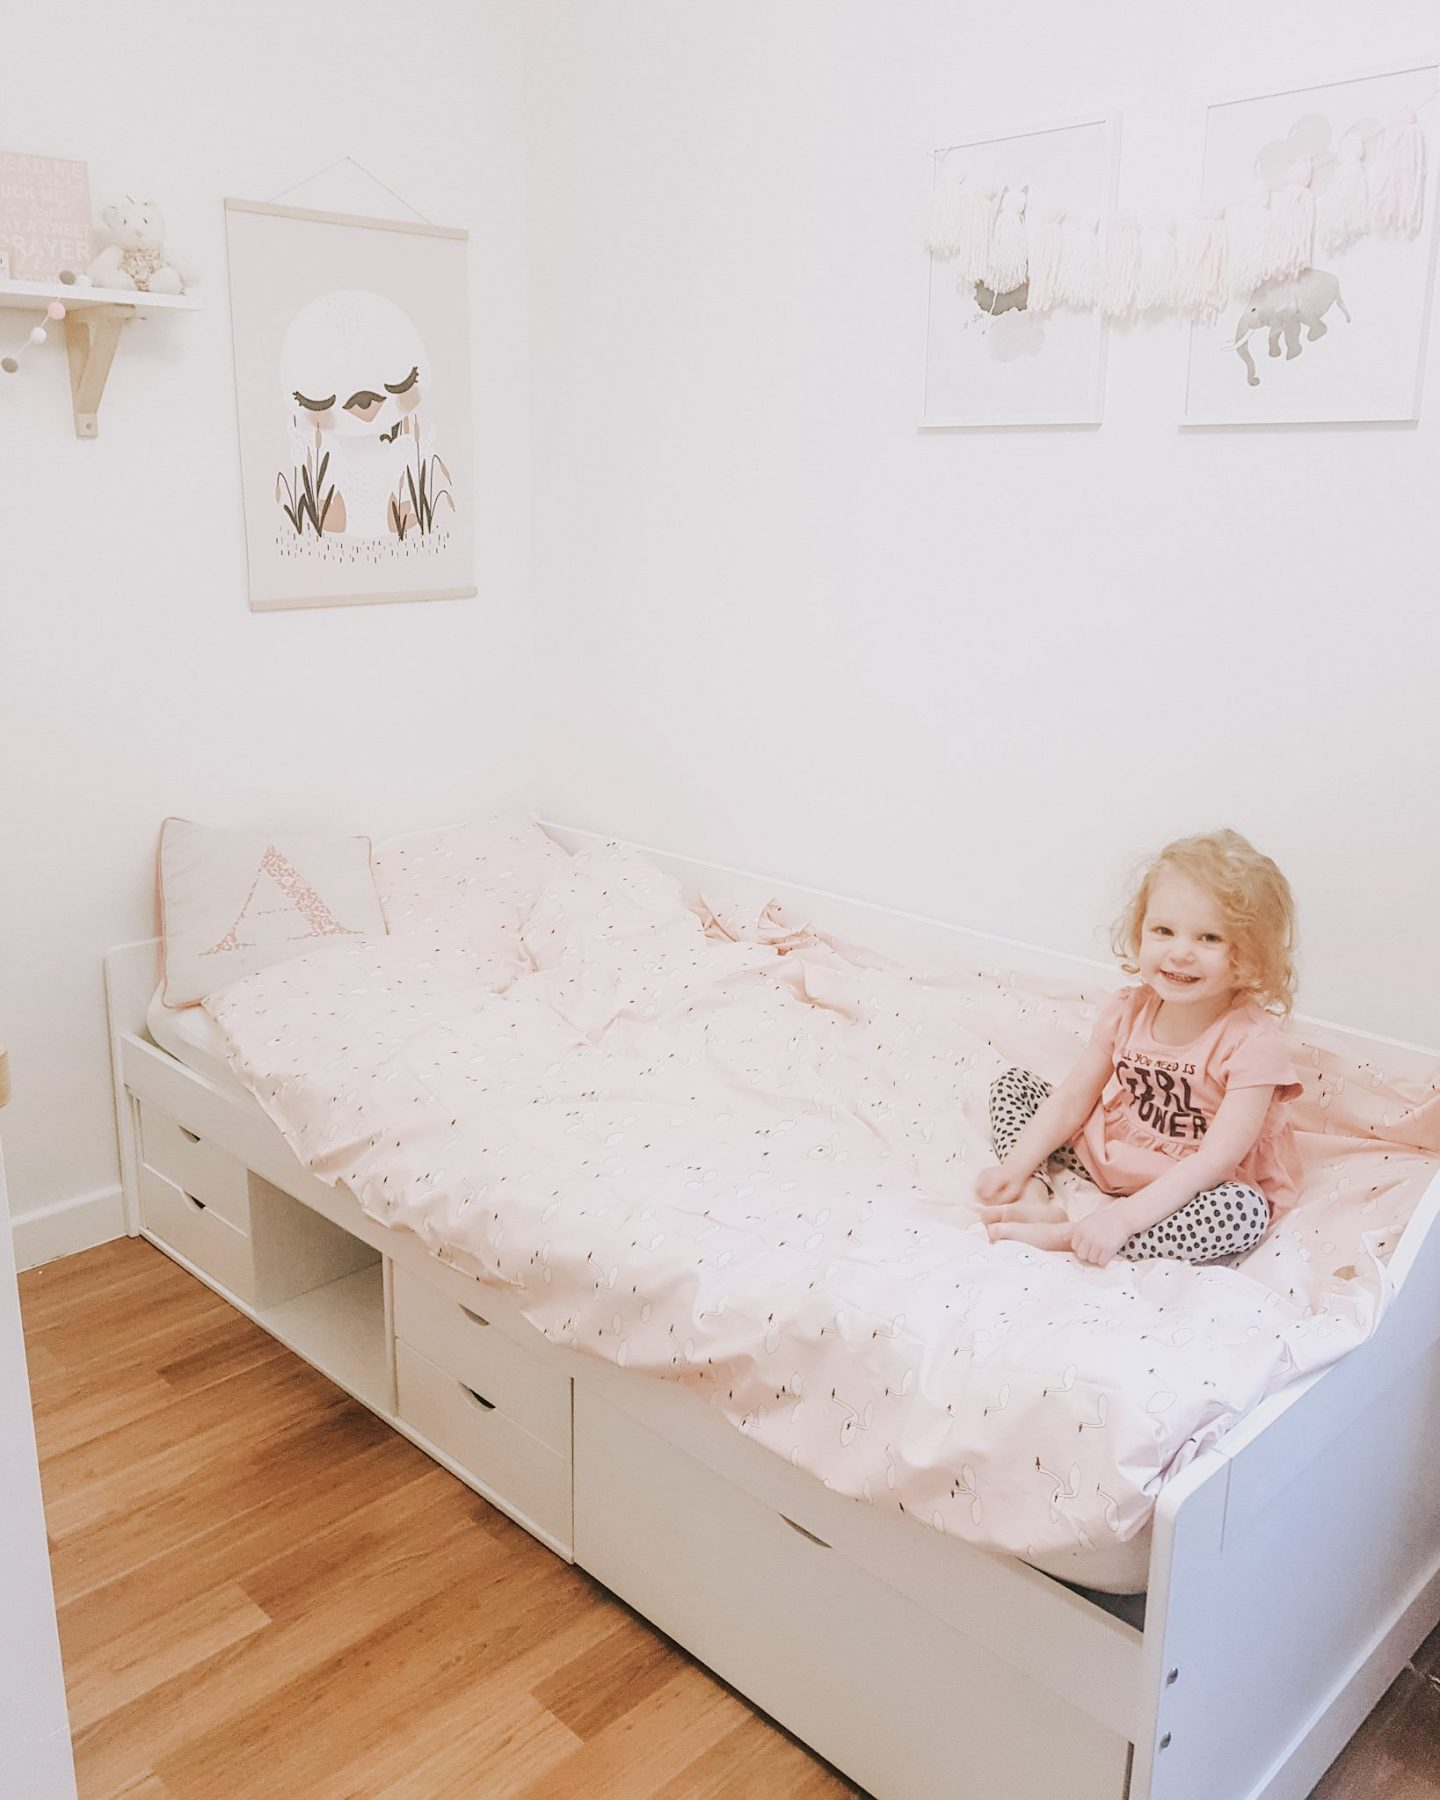 How Big Is A Toddler Bed.From A Toddler Bed To A Big Girl Bed With Noa Nani